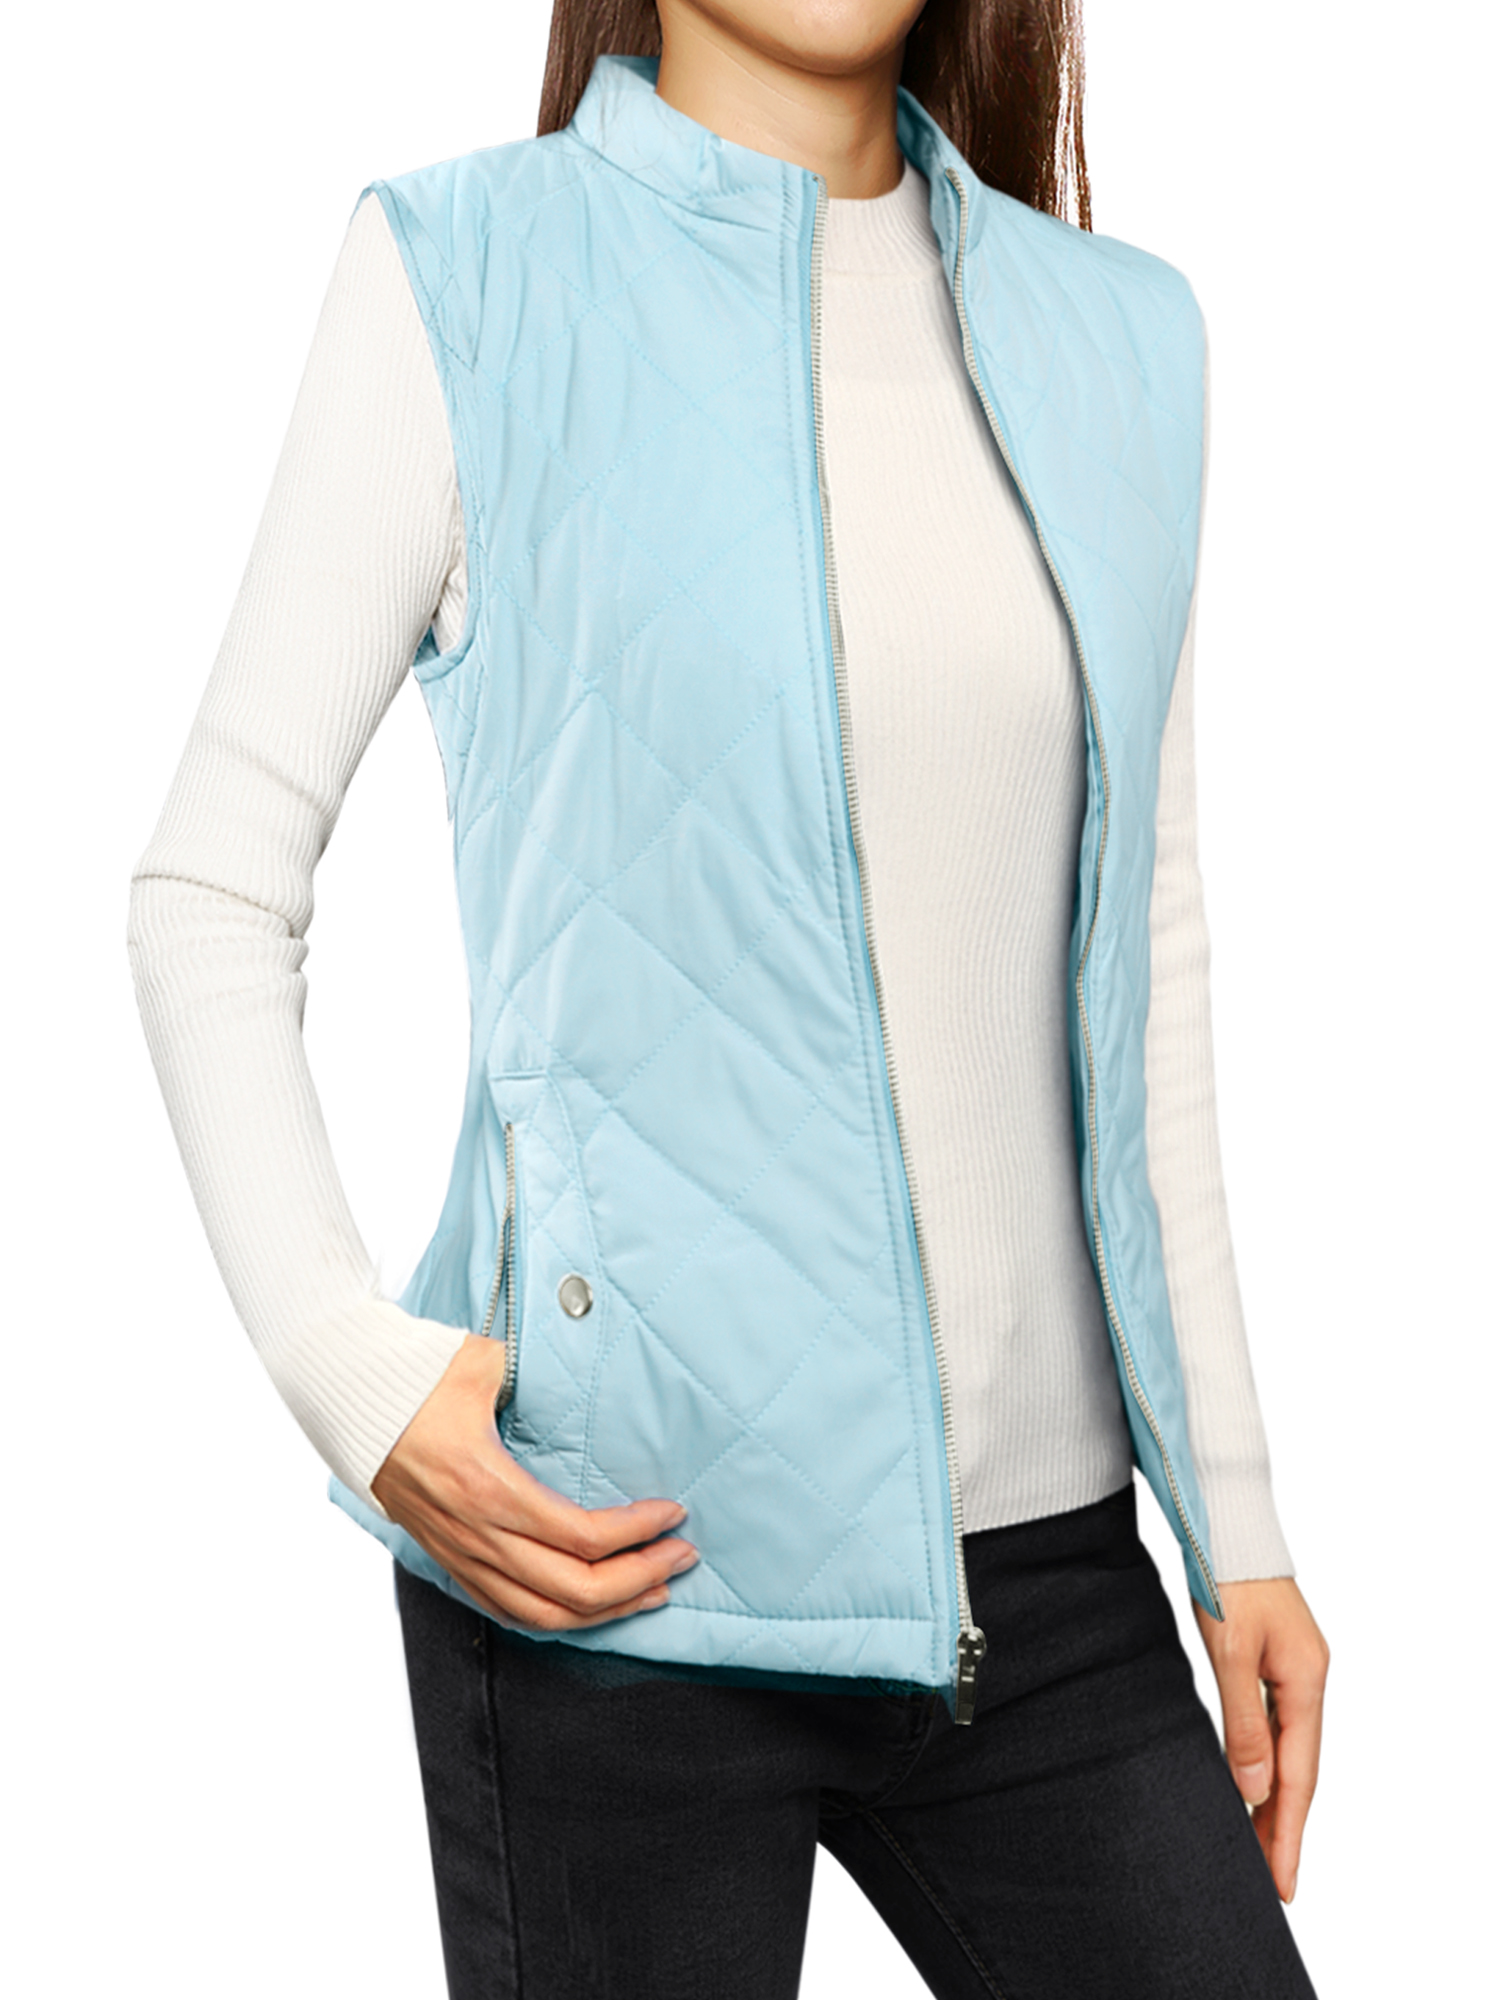 Allegra K Woman Zip Up Front Pockets Quilted Padded Vest Blue S (US 6)